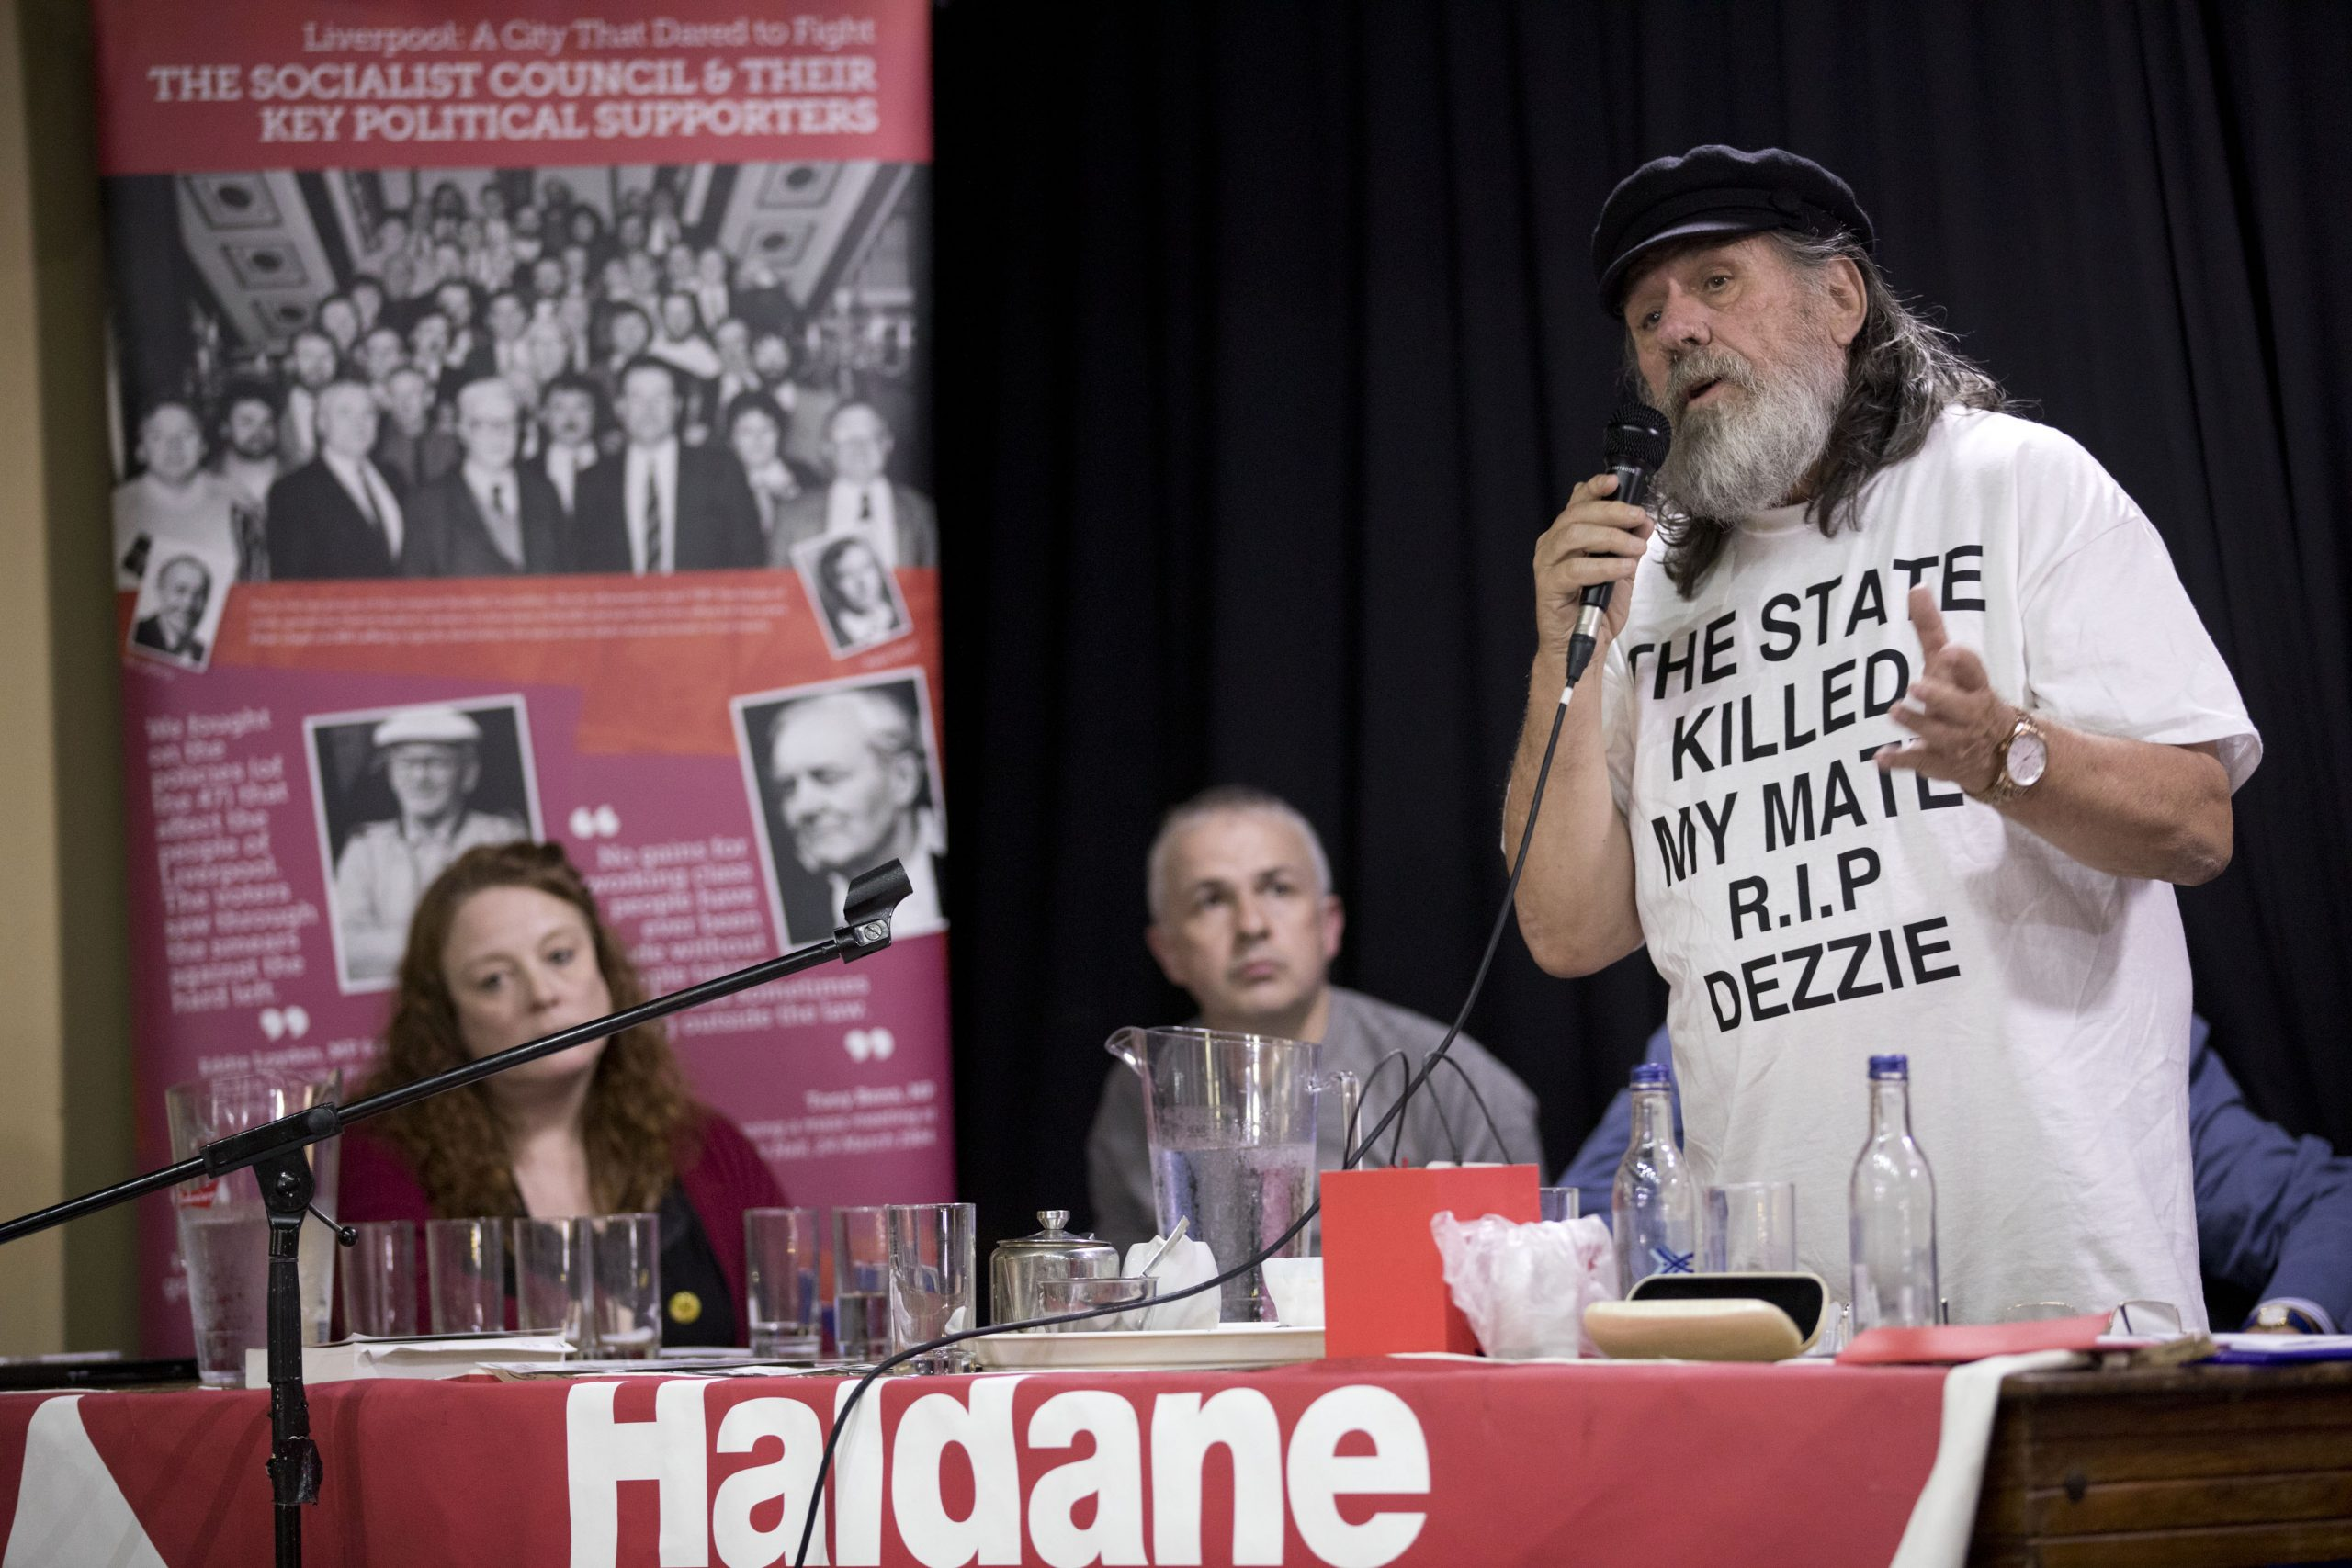 Haldane Society fringe meeting at Labour Party Conference, on The State and Political Policing. Casa Bar, Liverpool. © Jess Hurd/reportdigital.co.uk